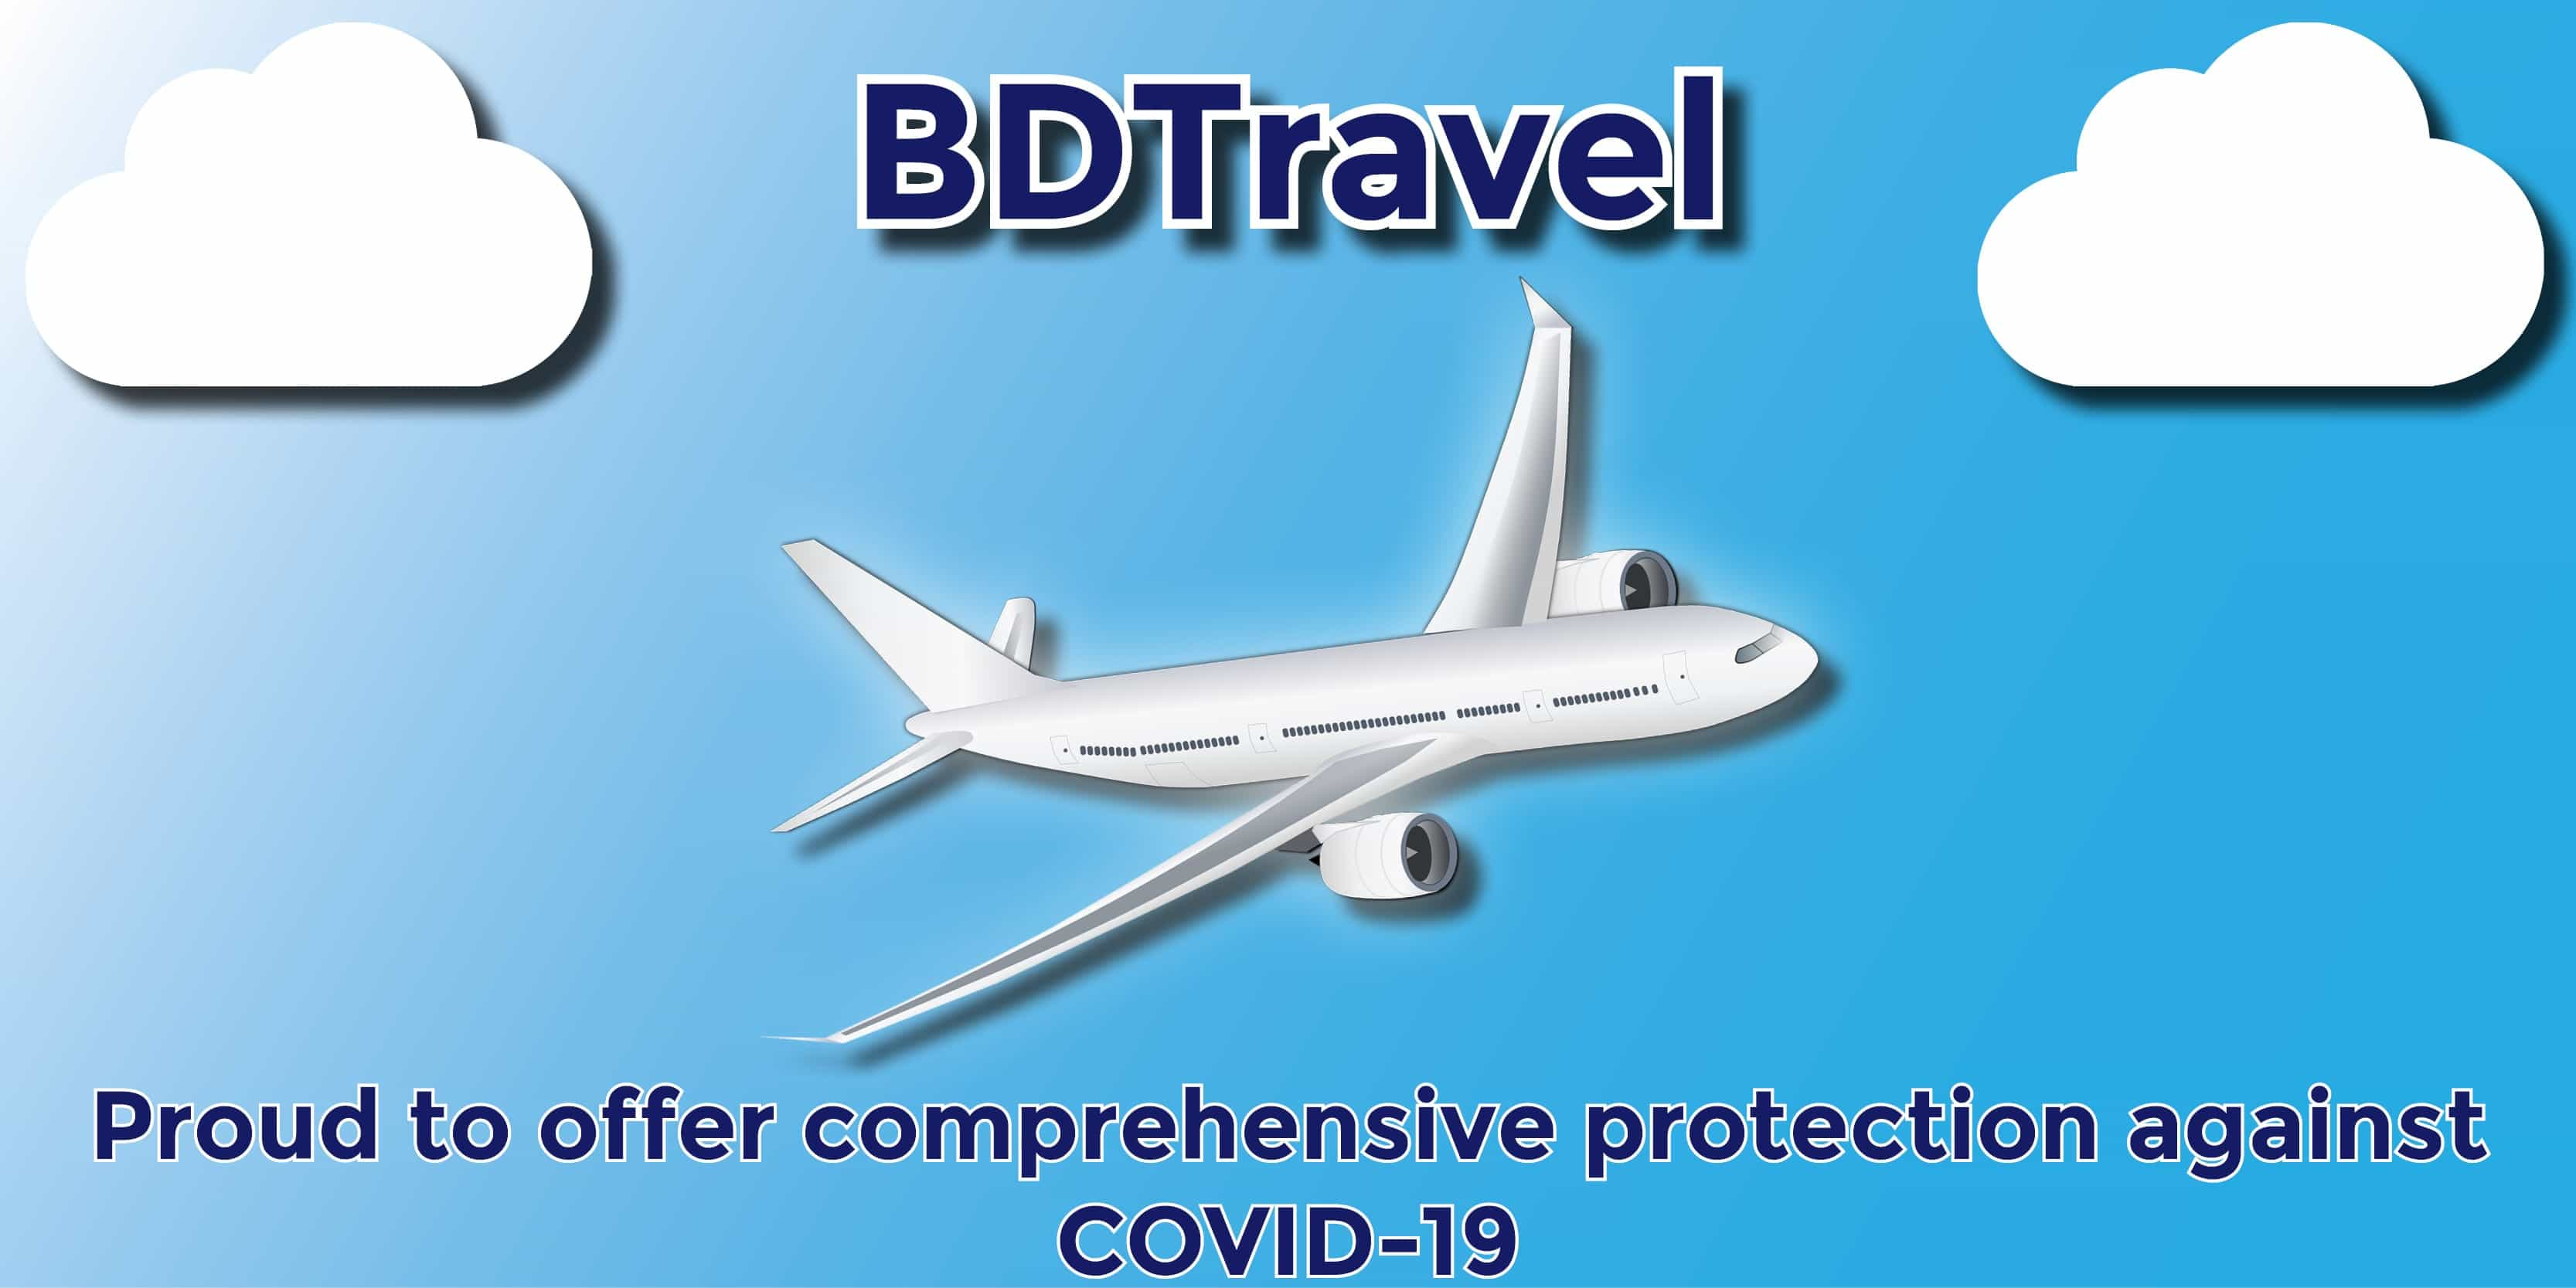 COVID Travel Insurance Advert Showing Plane flying between clouds on blue sky background